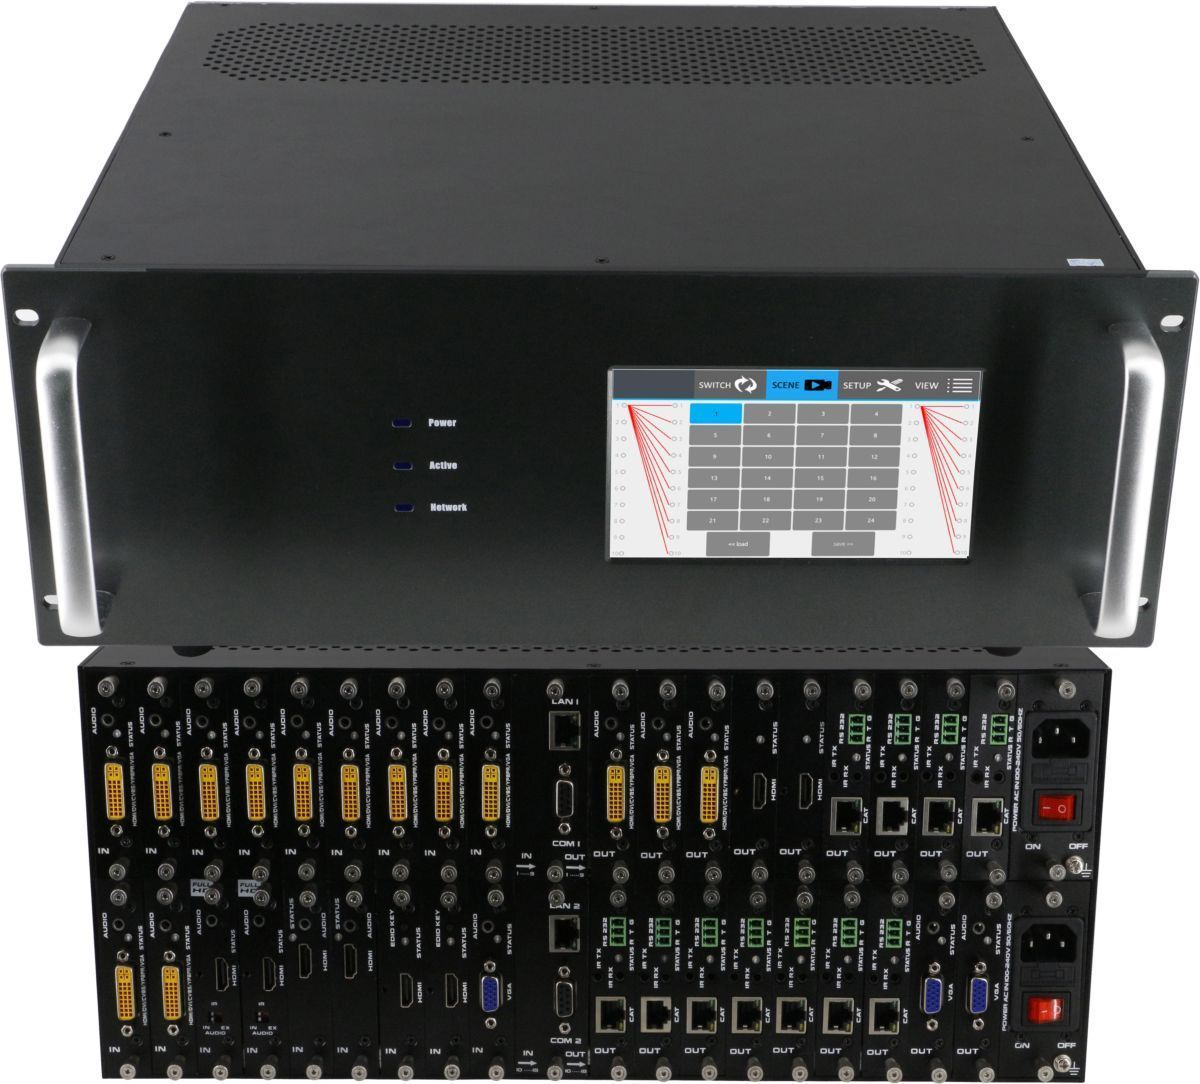 4K 14x8 HDMI Matrix Switcher with Color Touchscreen